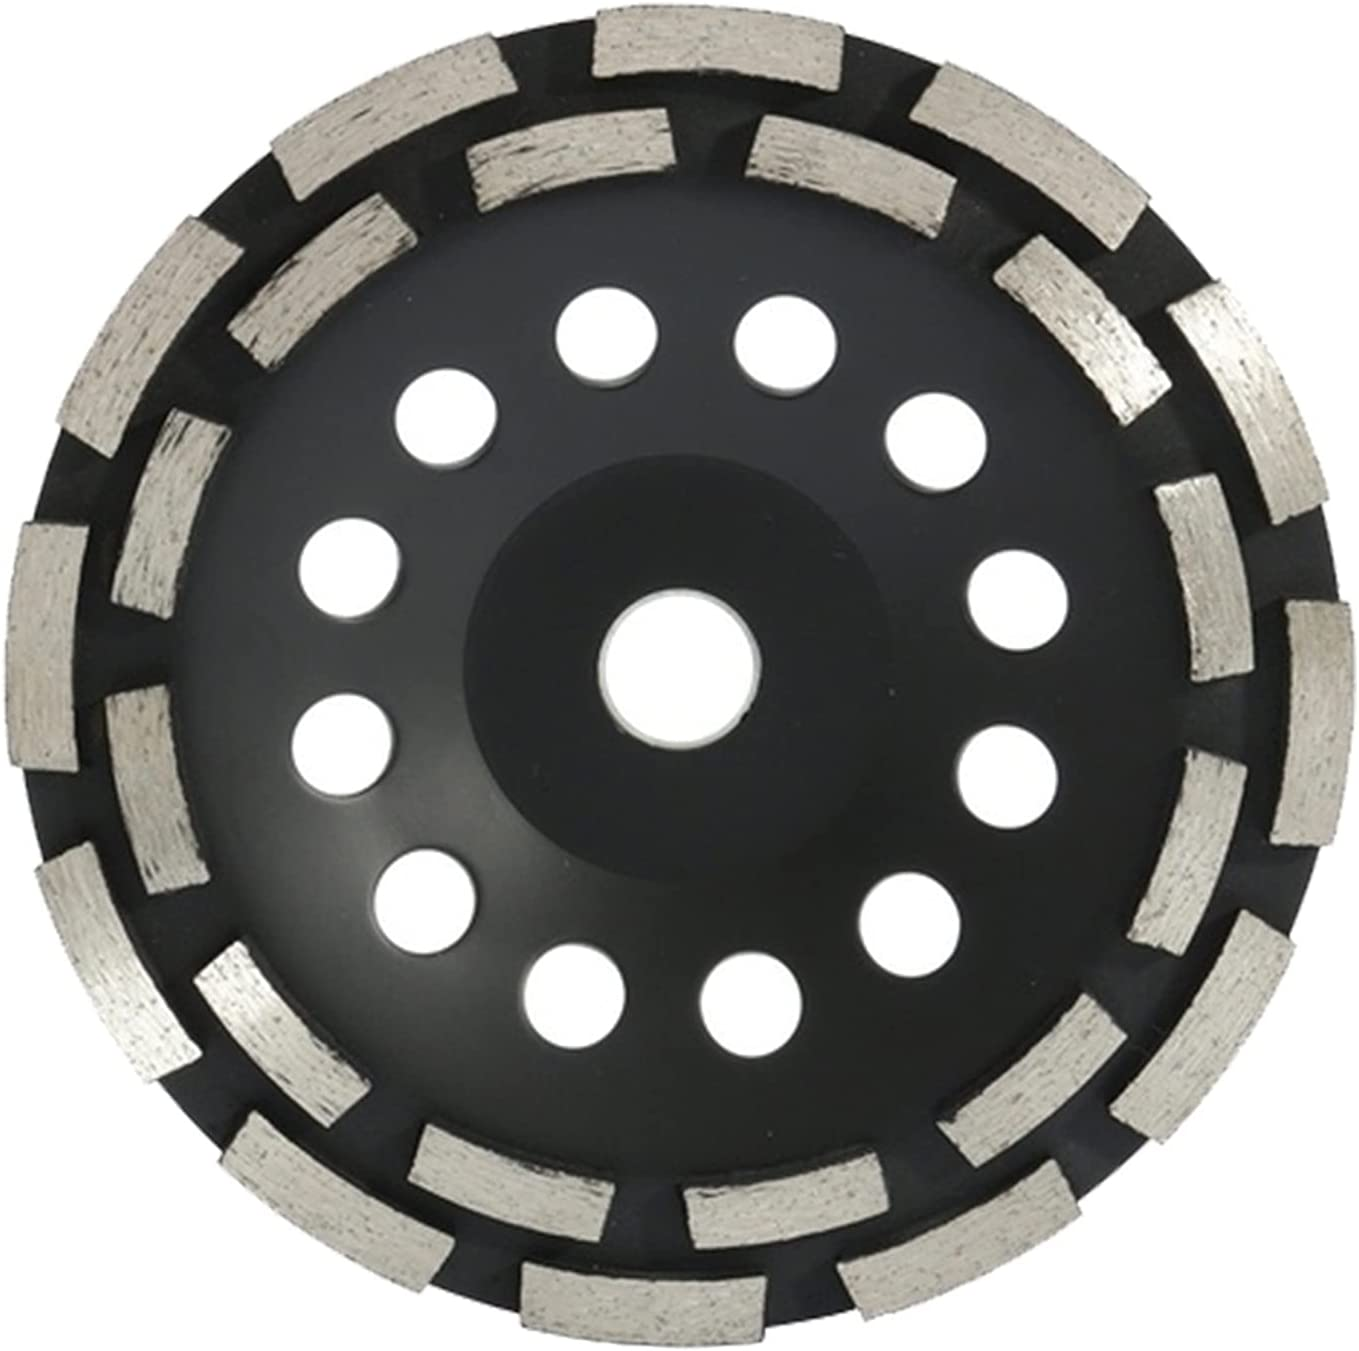 Cutting 70% OFF Outlet Now on sale wheele Double Row Grinding Wheel Diamond Disc Abrasives